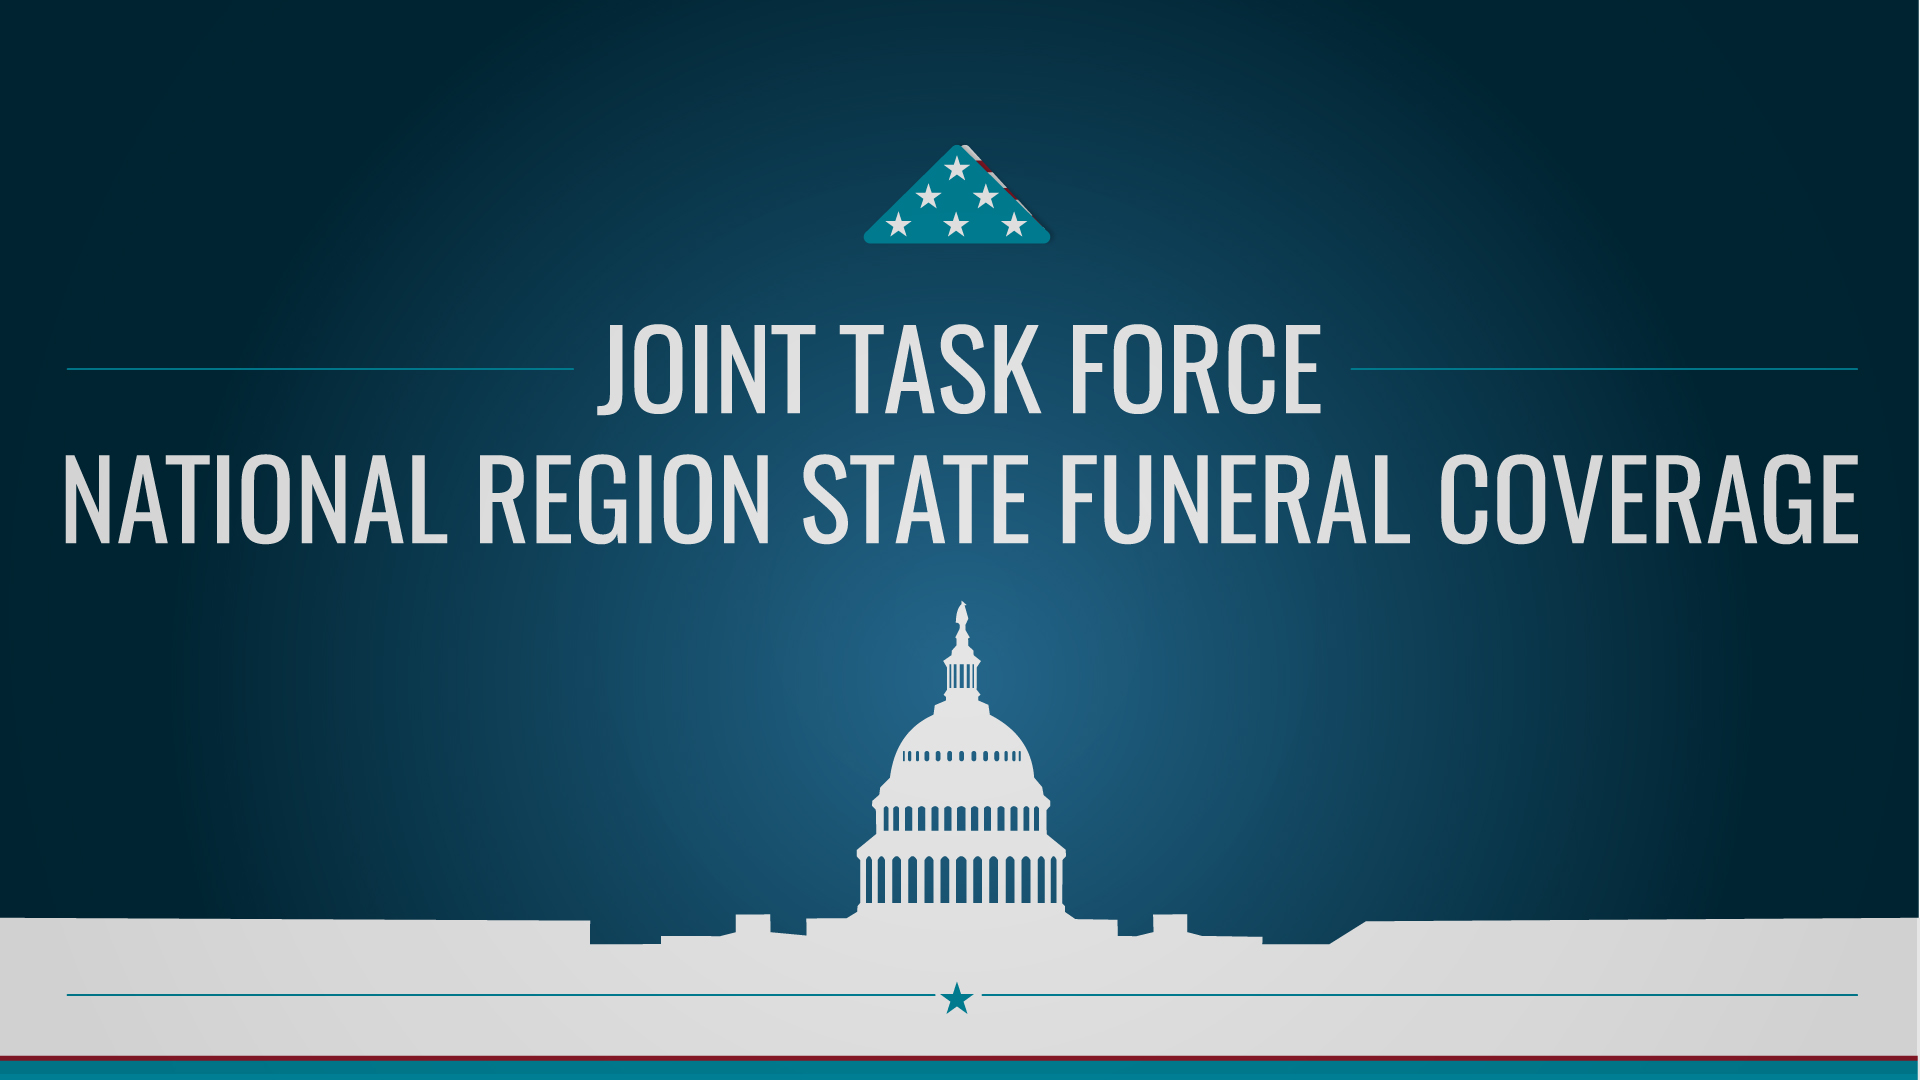 Joint Task Force – National Region State Funeral Coverage